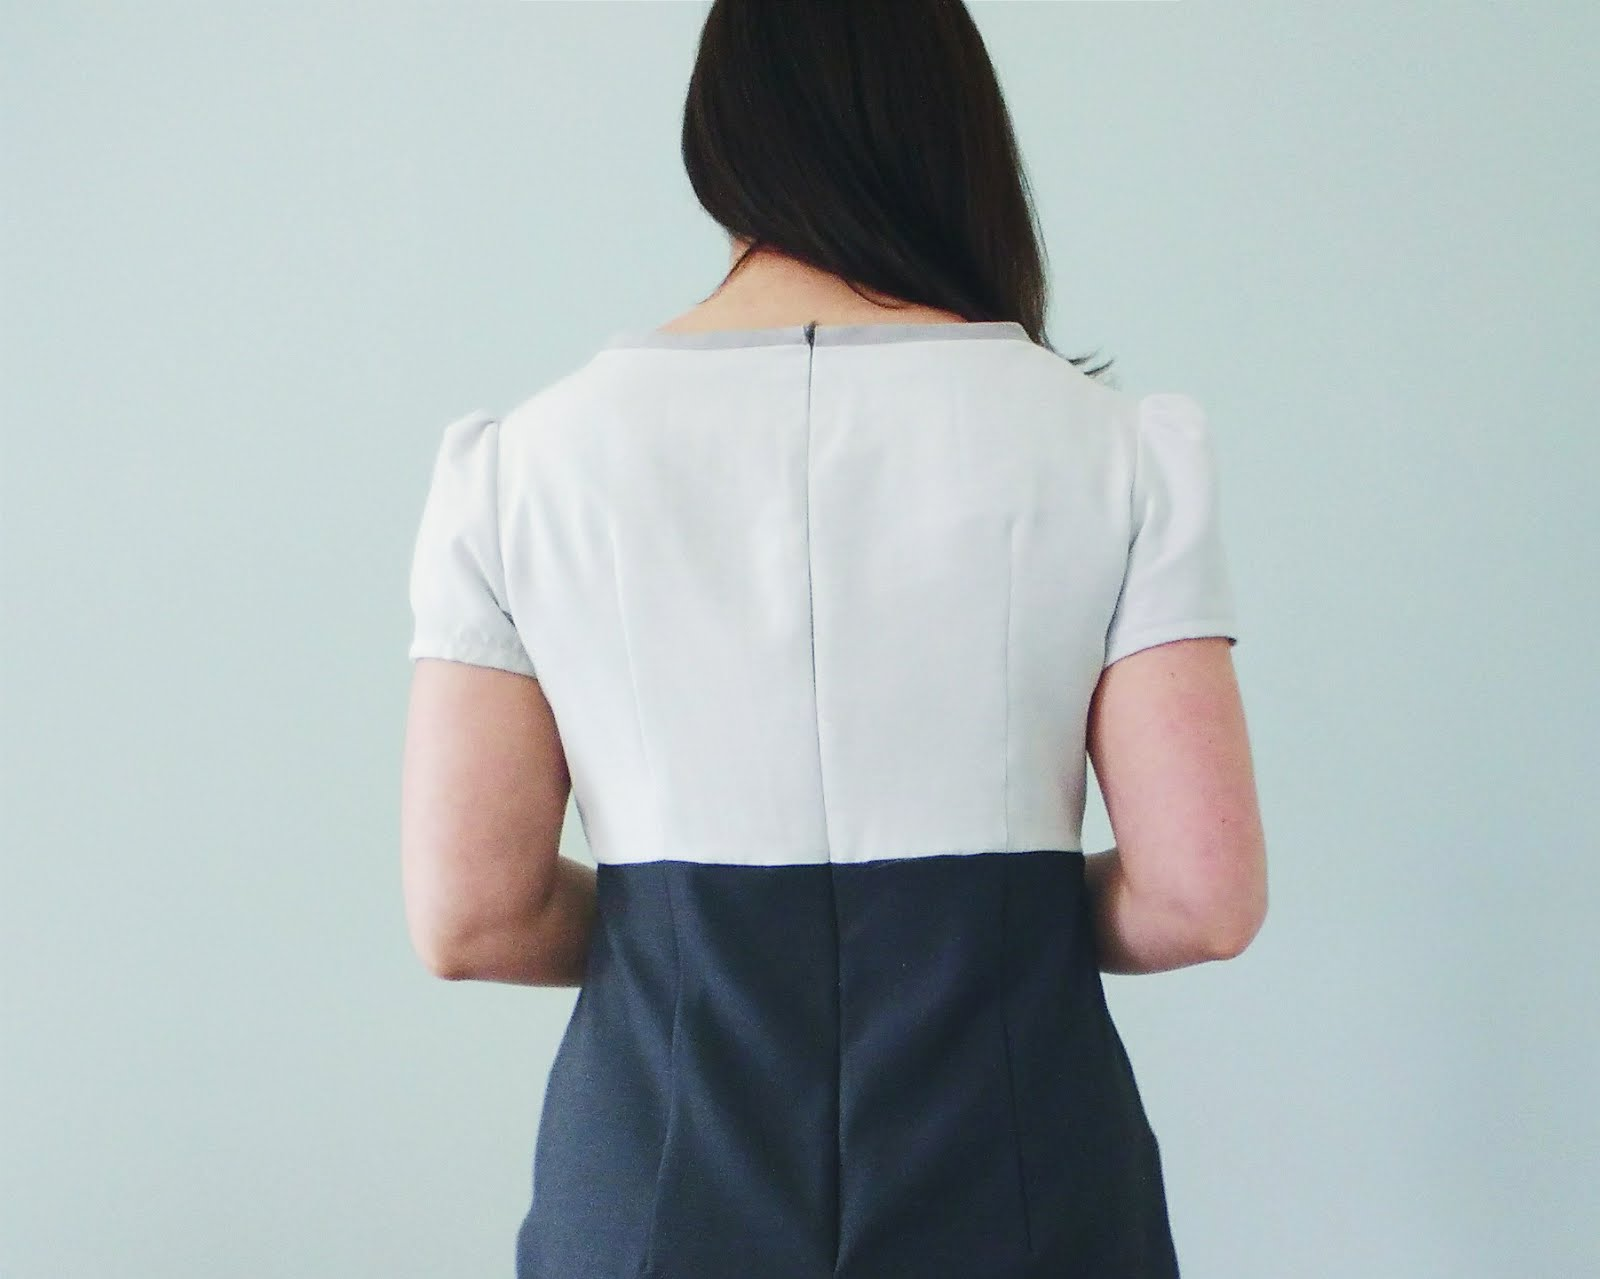 Lined Colour blocked Megan Dress from Tilly and the Buttons back view